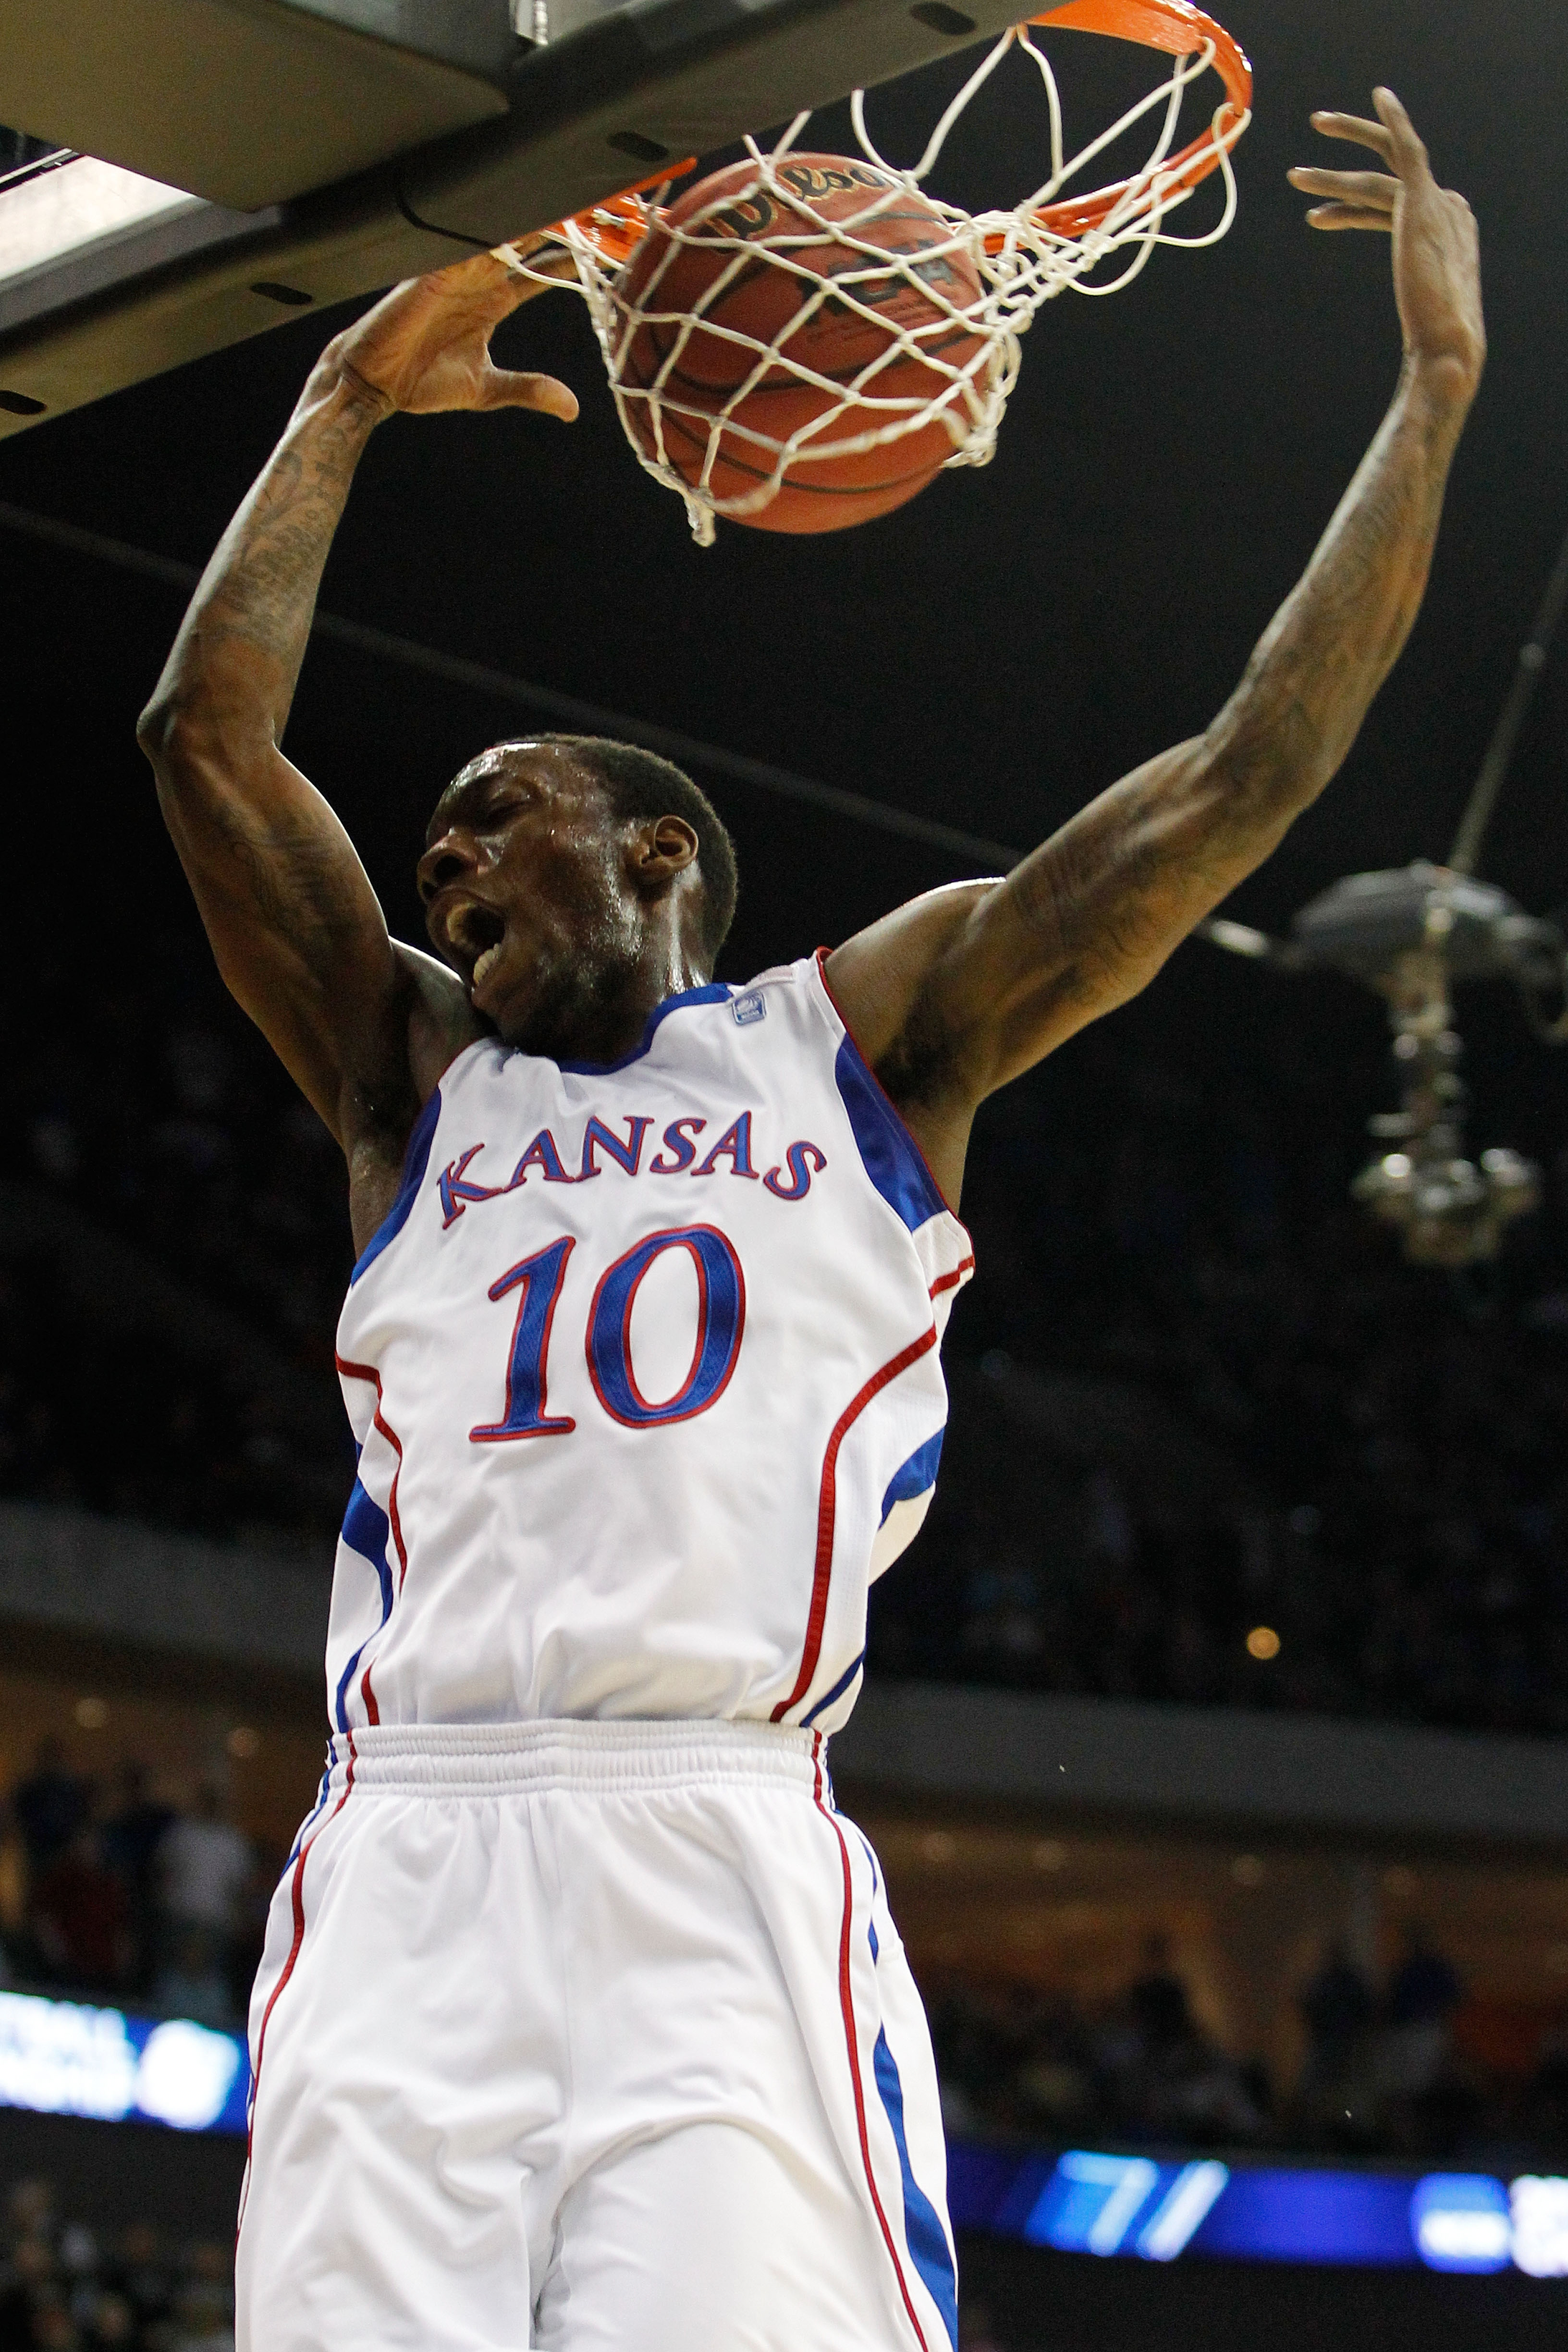 TULSA, OK - MARCH 20:  Tyshawn Taylor #10 of the Kansas Jayhawks dunks the ball against the Illinois Fighting Illini during the third round of the 2011 NCAA men's basketball tournament at BOK Center on March 20, 2011 in Tulsa, Oklahoma.  (Photo by Tom Pen